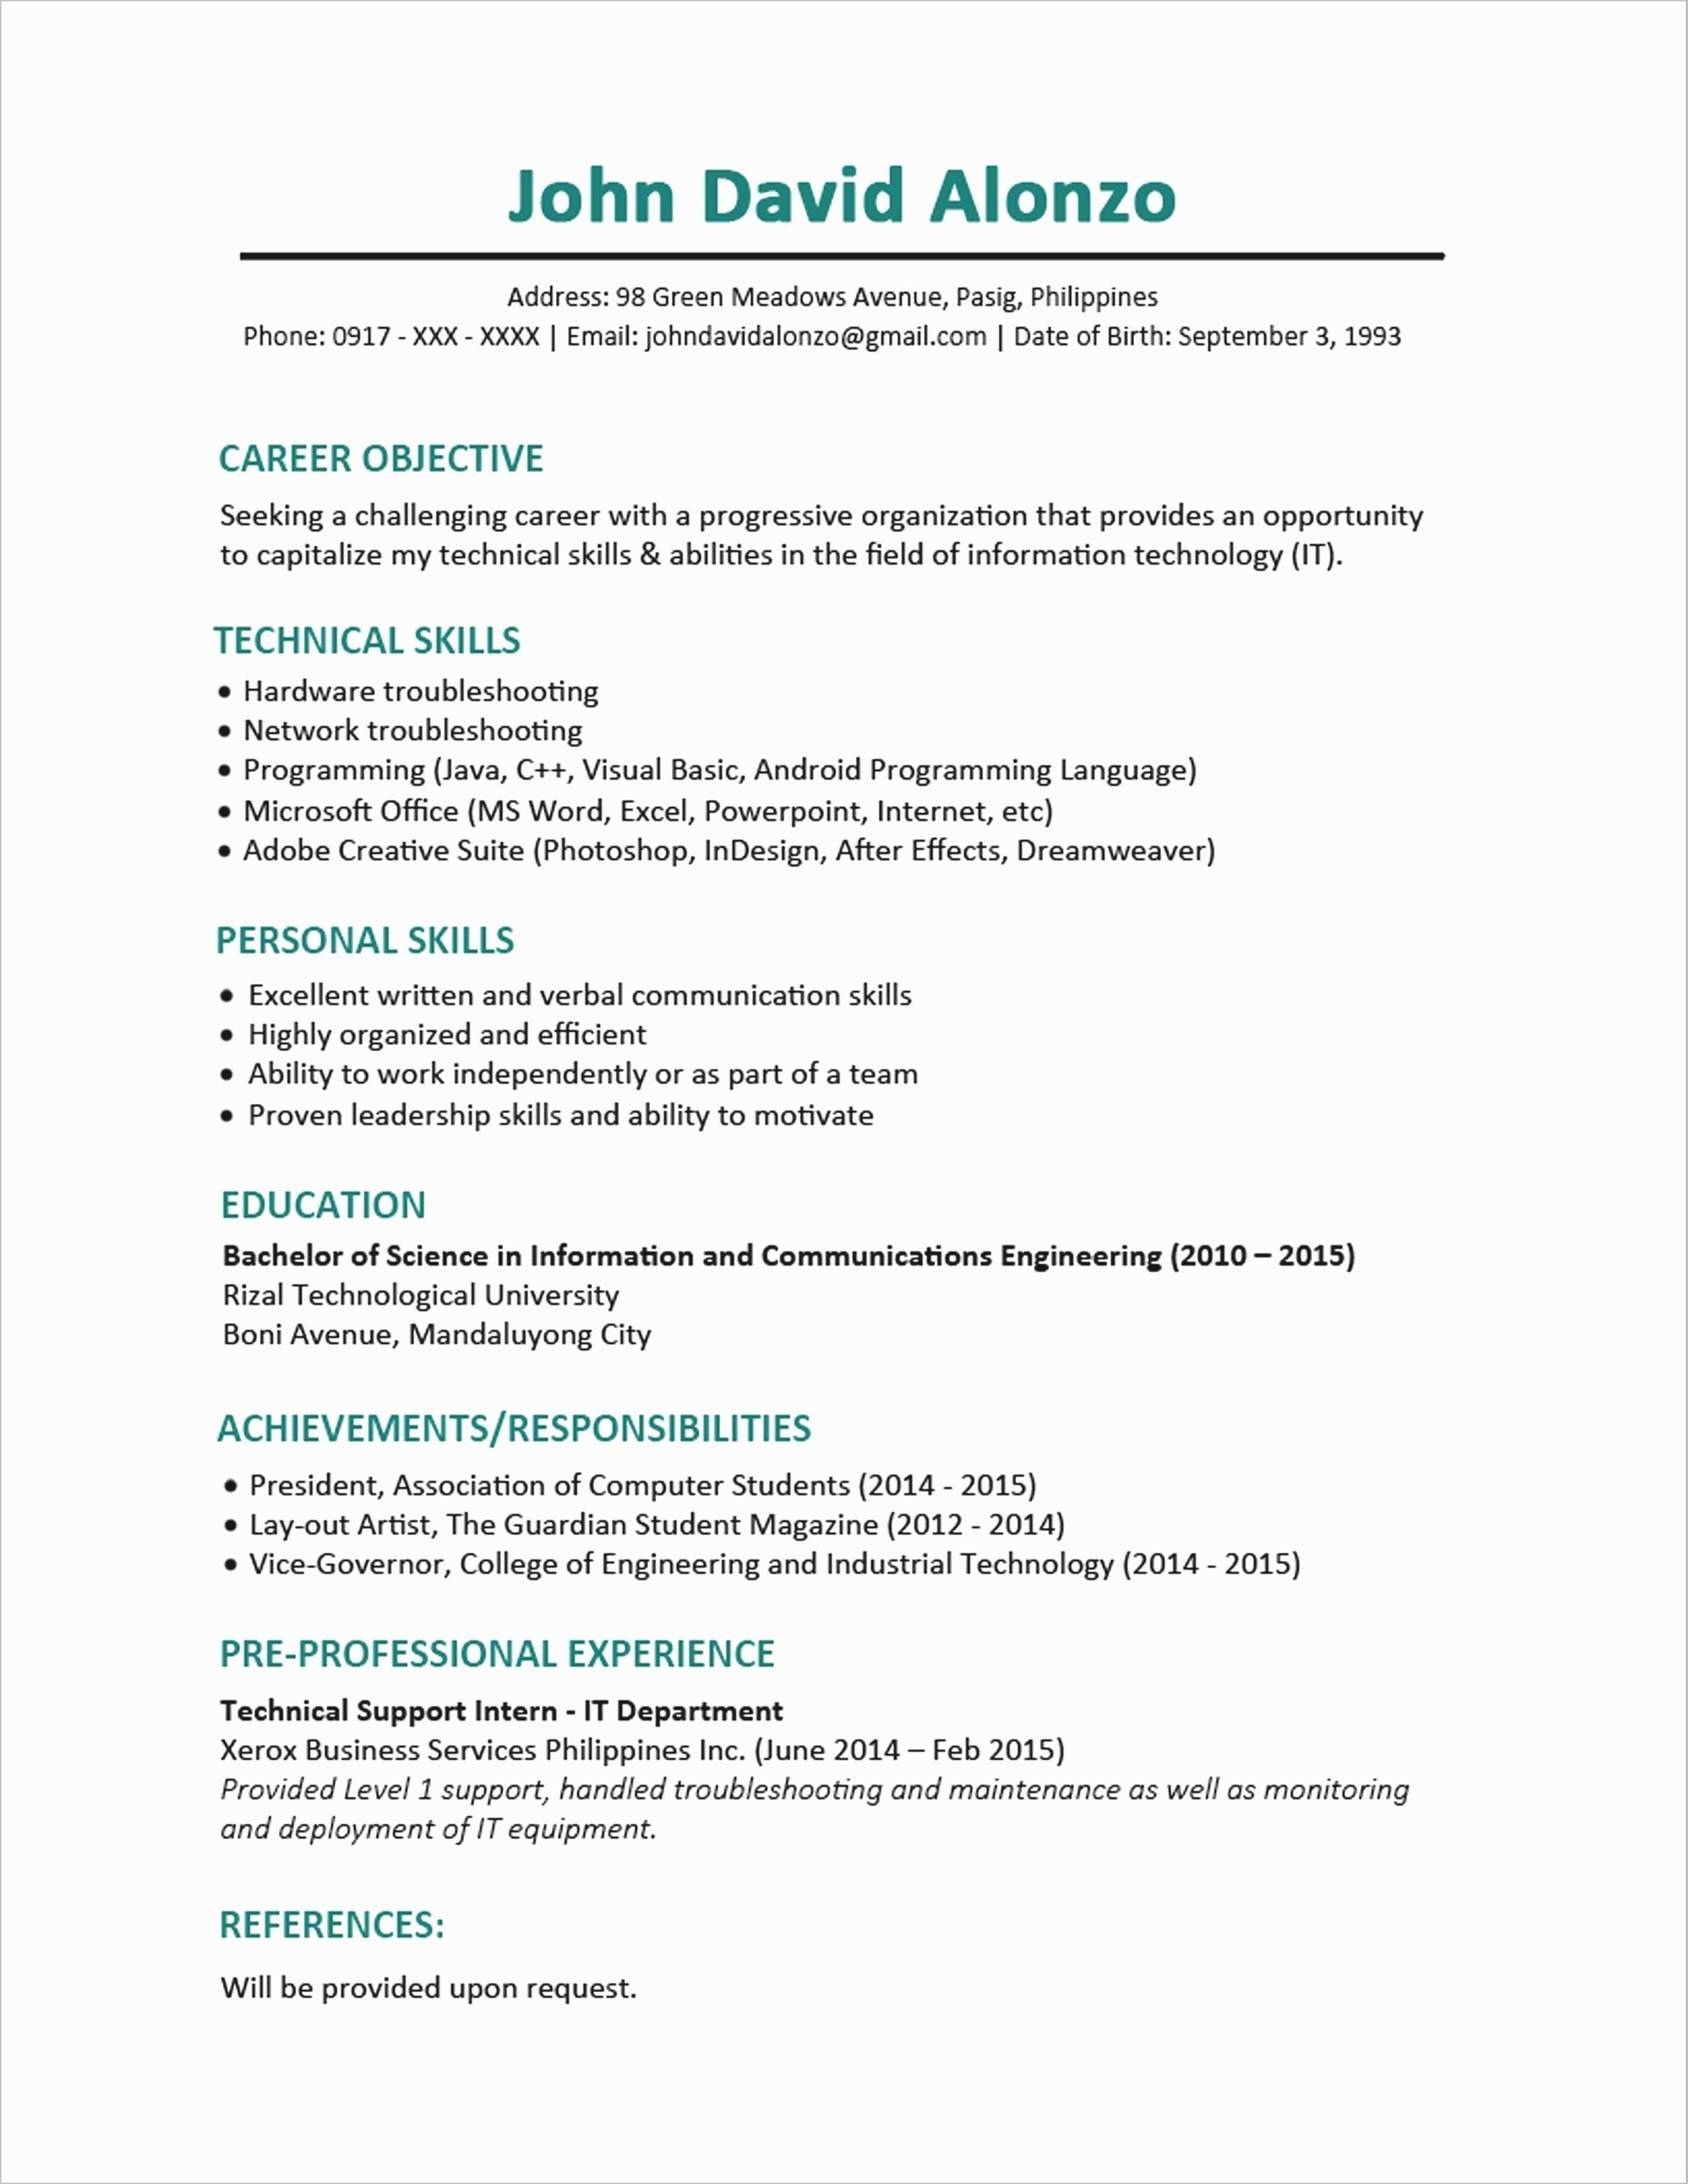 ultrasound resume template Collection-0d Teacher Resume Education Resume Template Beautiful Teacher Resume Examples 2014 5-h